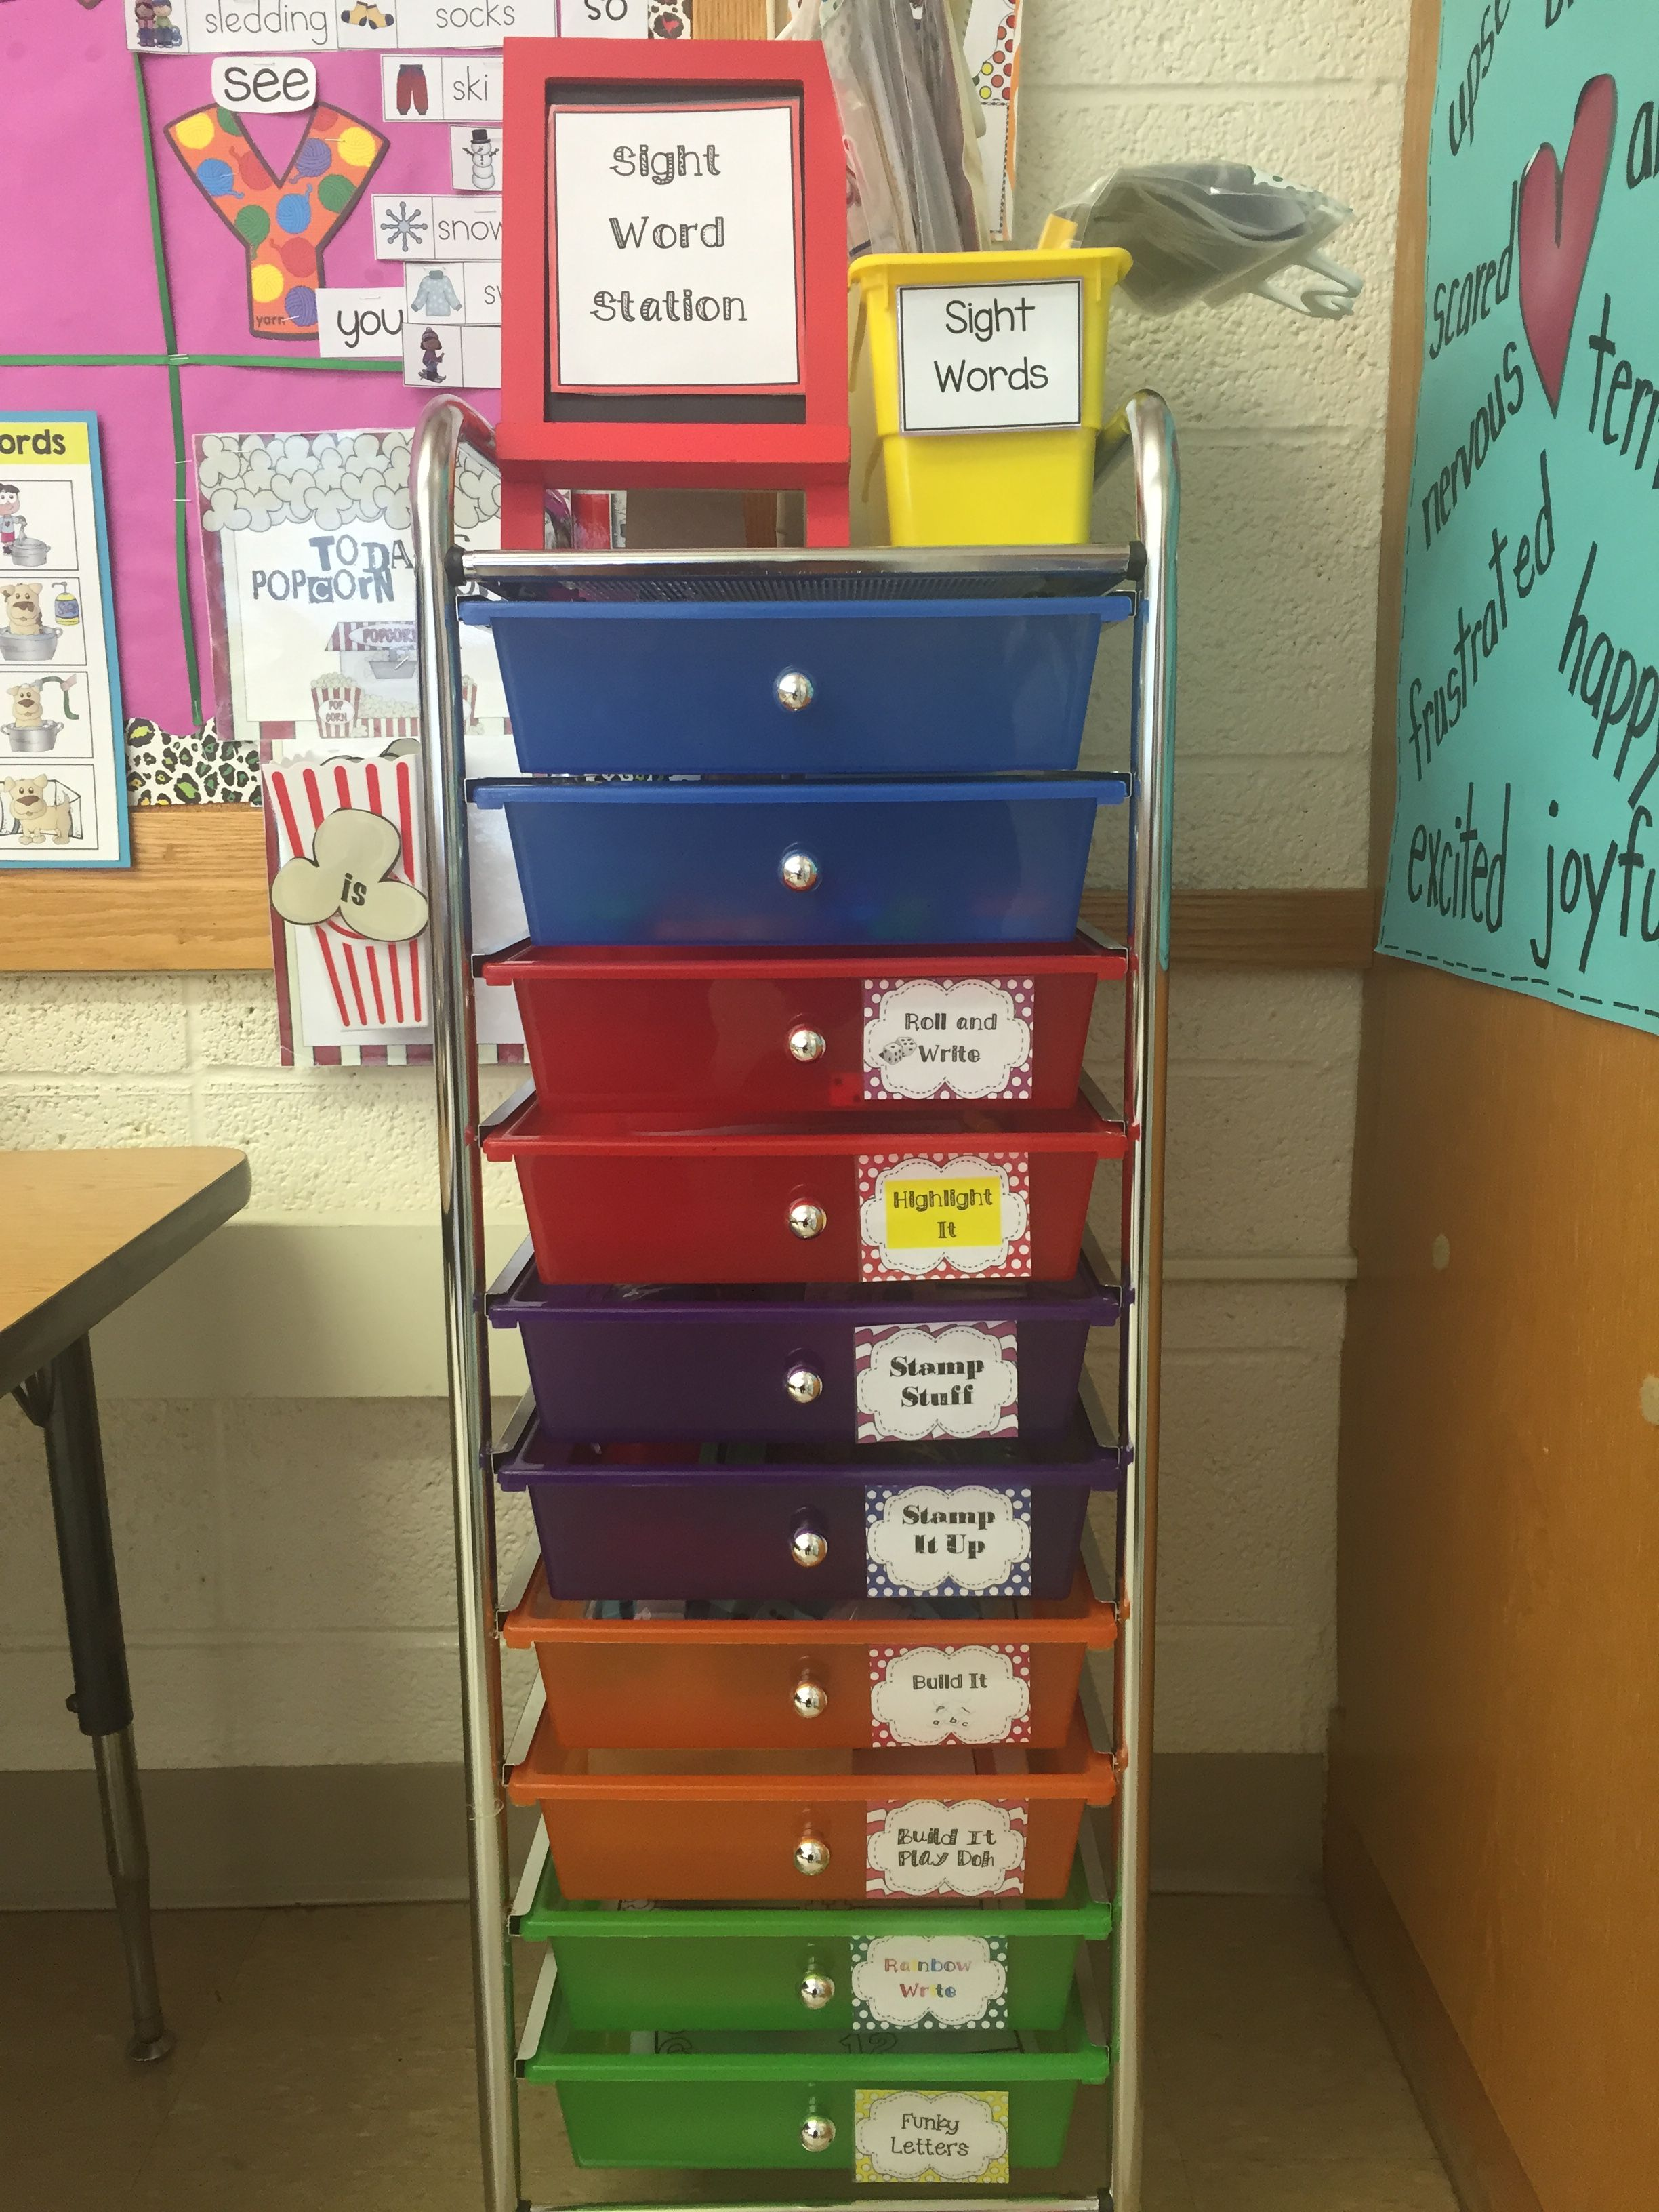 Sight Words Sight Words Station Let S Get Organized